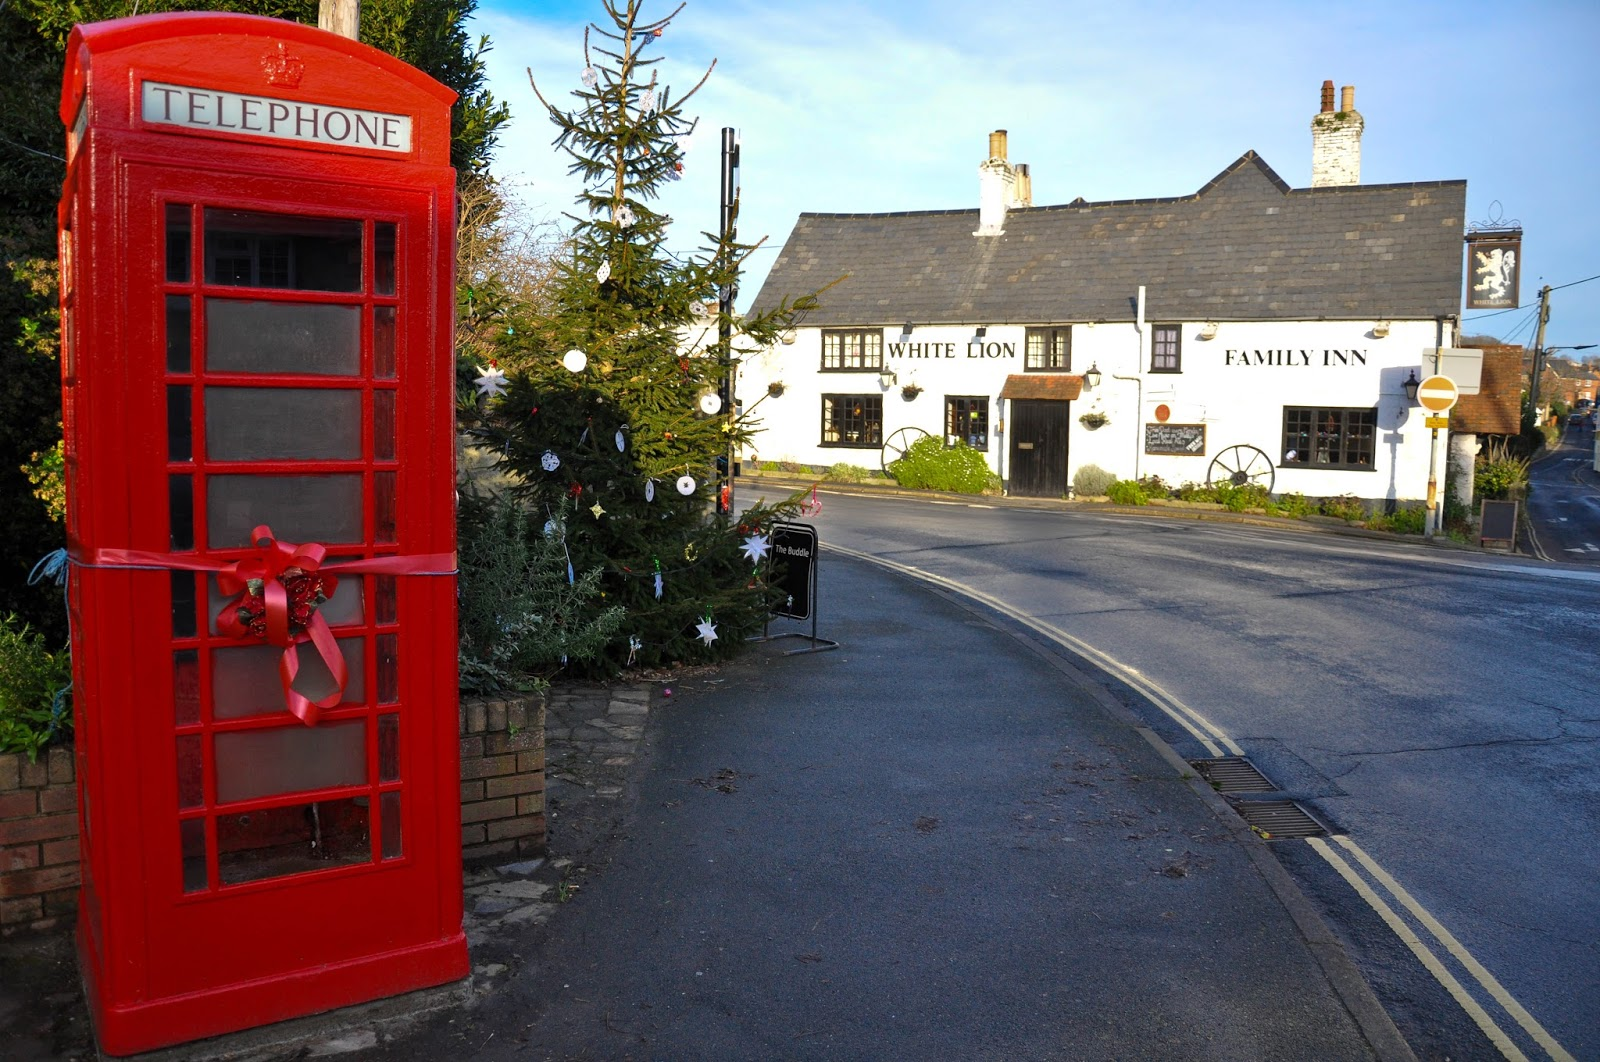 The village of Niton decorated for Christmas, Isle of Wight, England